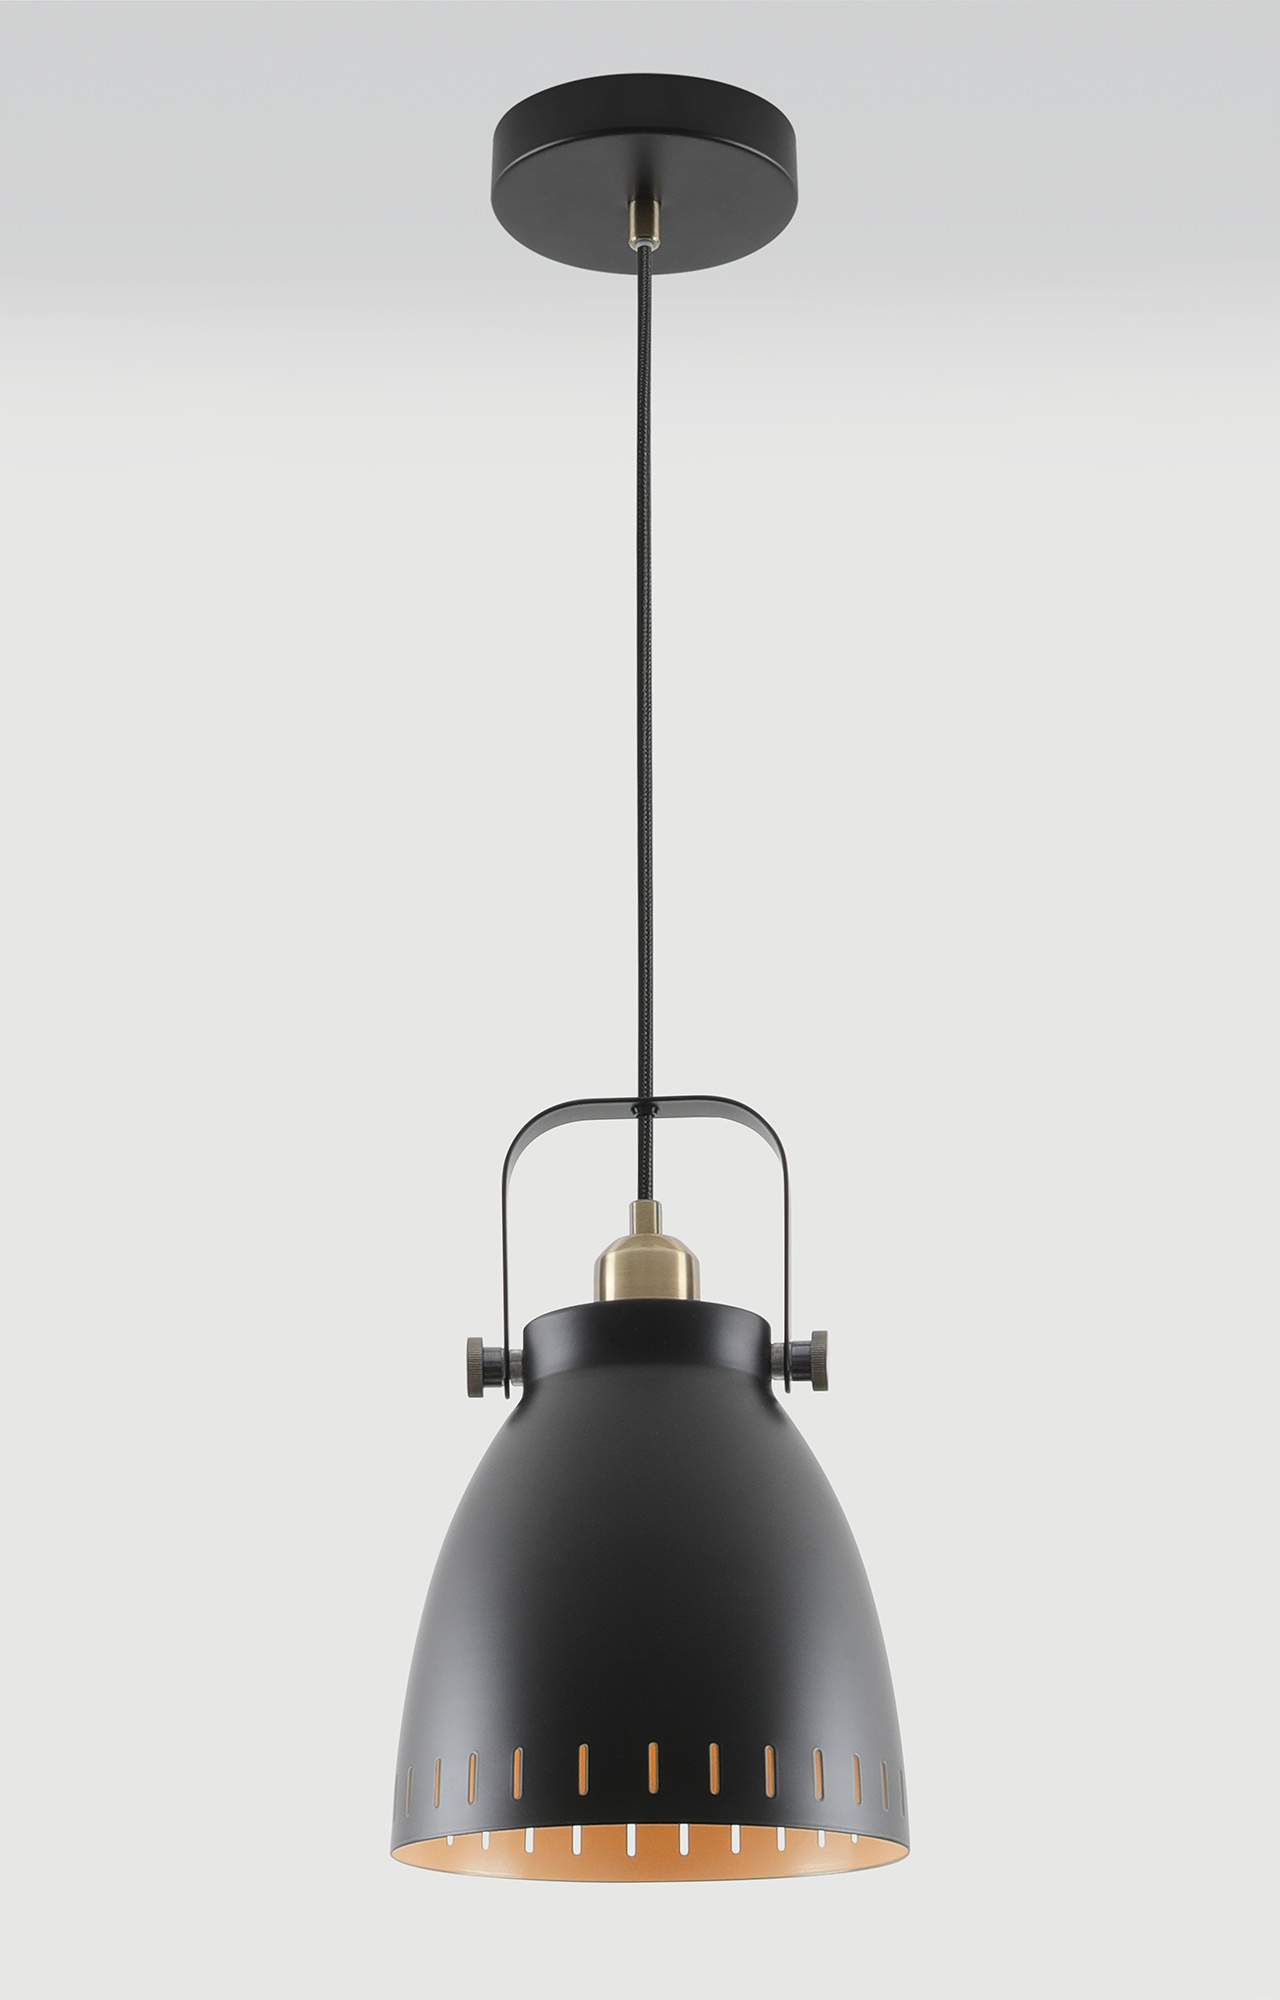 Medium Pendant, 1 x E27, Matt Black/Antique Brass/Khaki